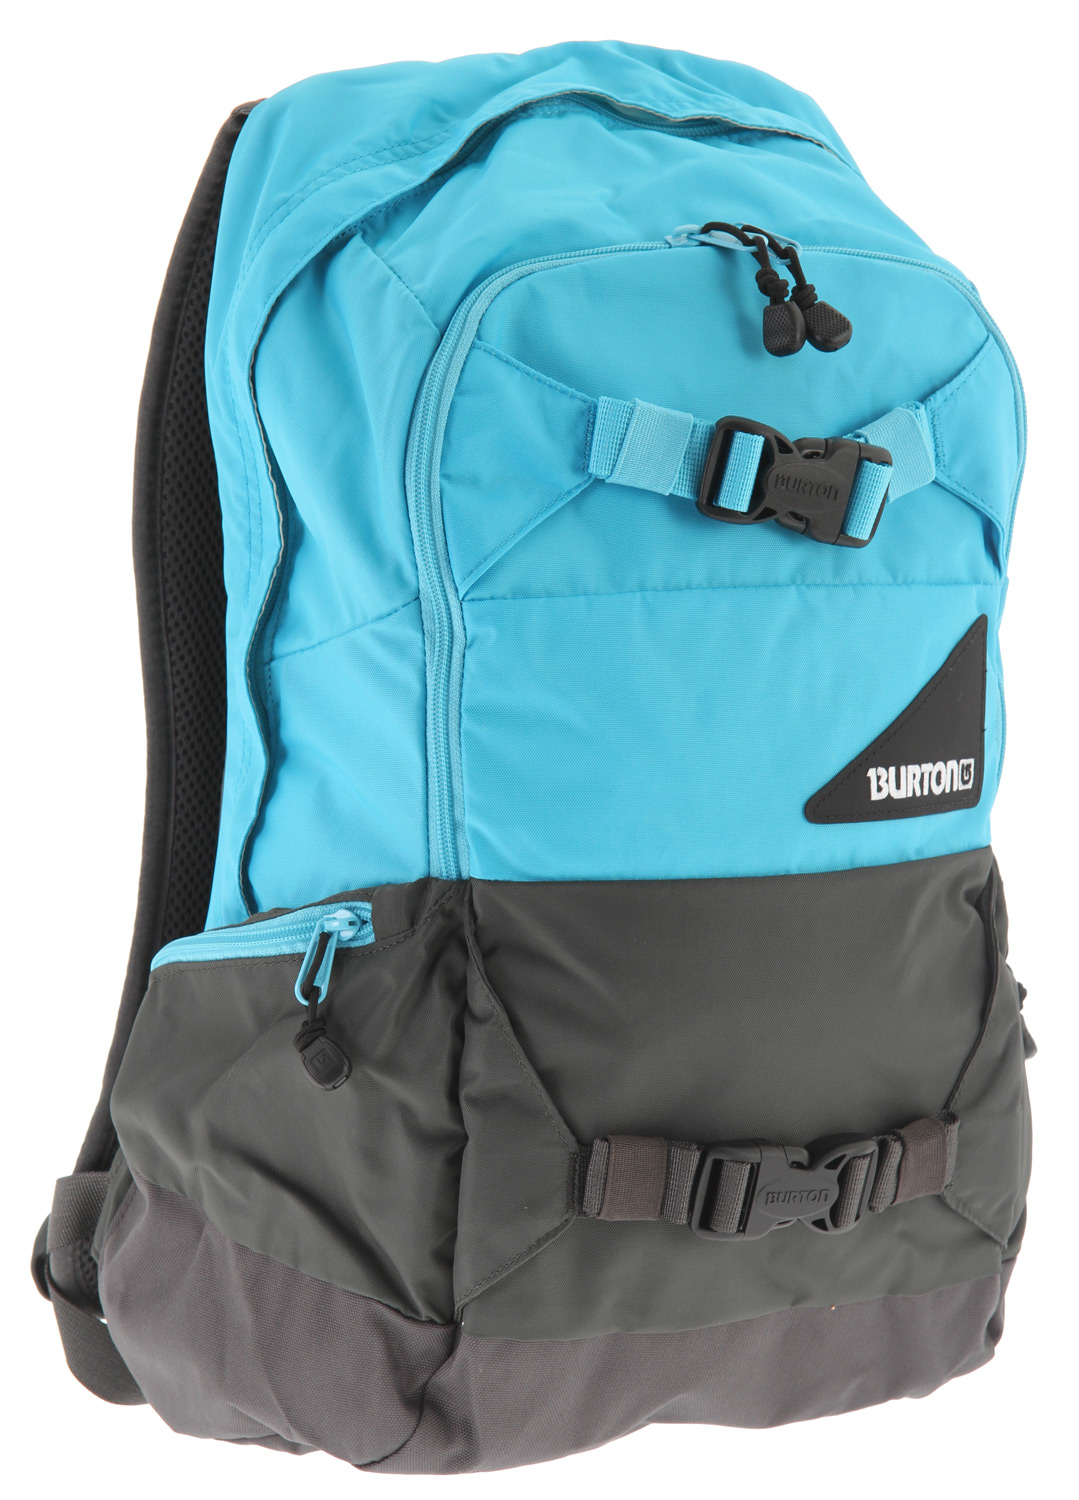 "Camp and Hike Versatile, dependable, and durable - the Burton Day Hiker 20L Backpack is ready for any on or off-snow adventure.Key Features of the Burton Day Hiker 20L Pack: 19""x11""x8"" 1.9 lbs Fabrication: 420D High-Density Nylon/600D Polyester Cush Ergonomic Shoulder Harness and Ergonomic Back Panel Vertical Board Carry Easy Access Internal Shovel Storage Pocket Fleece-lined Goggle/Sound Pocket Hydration Compatible Waist Strap - $41.95"